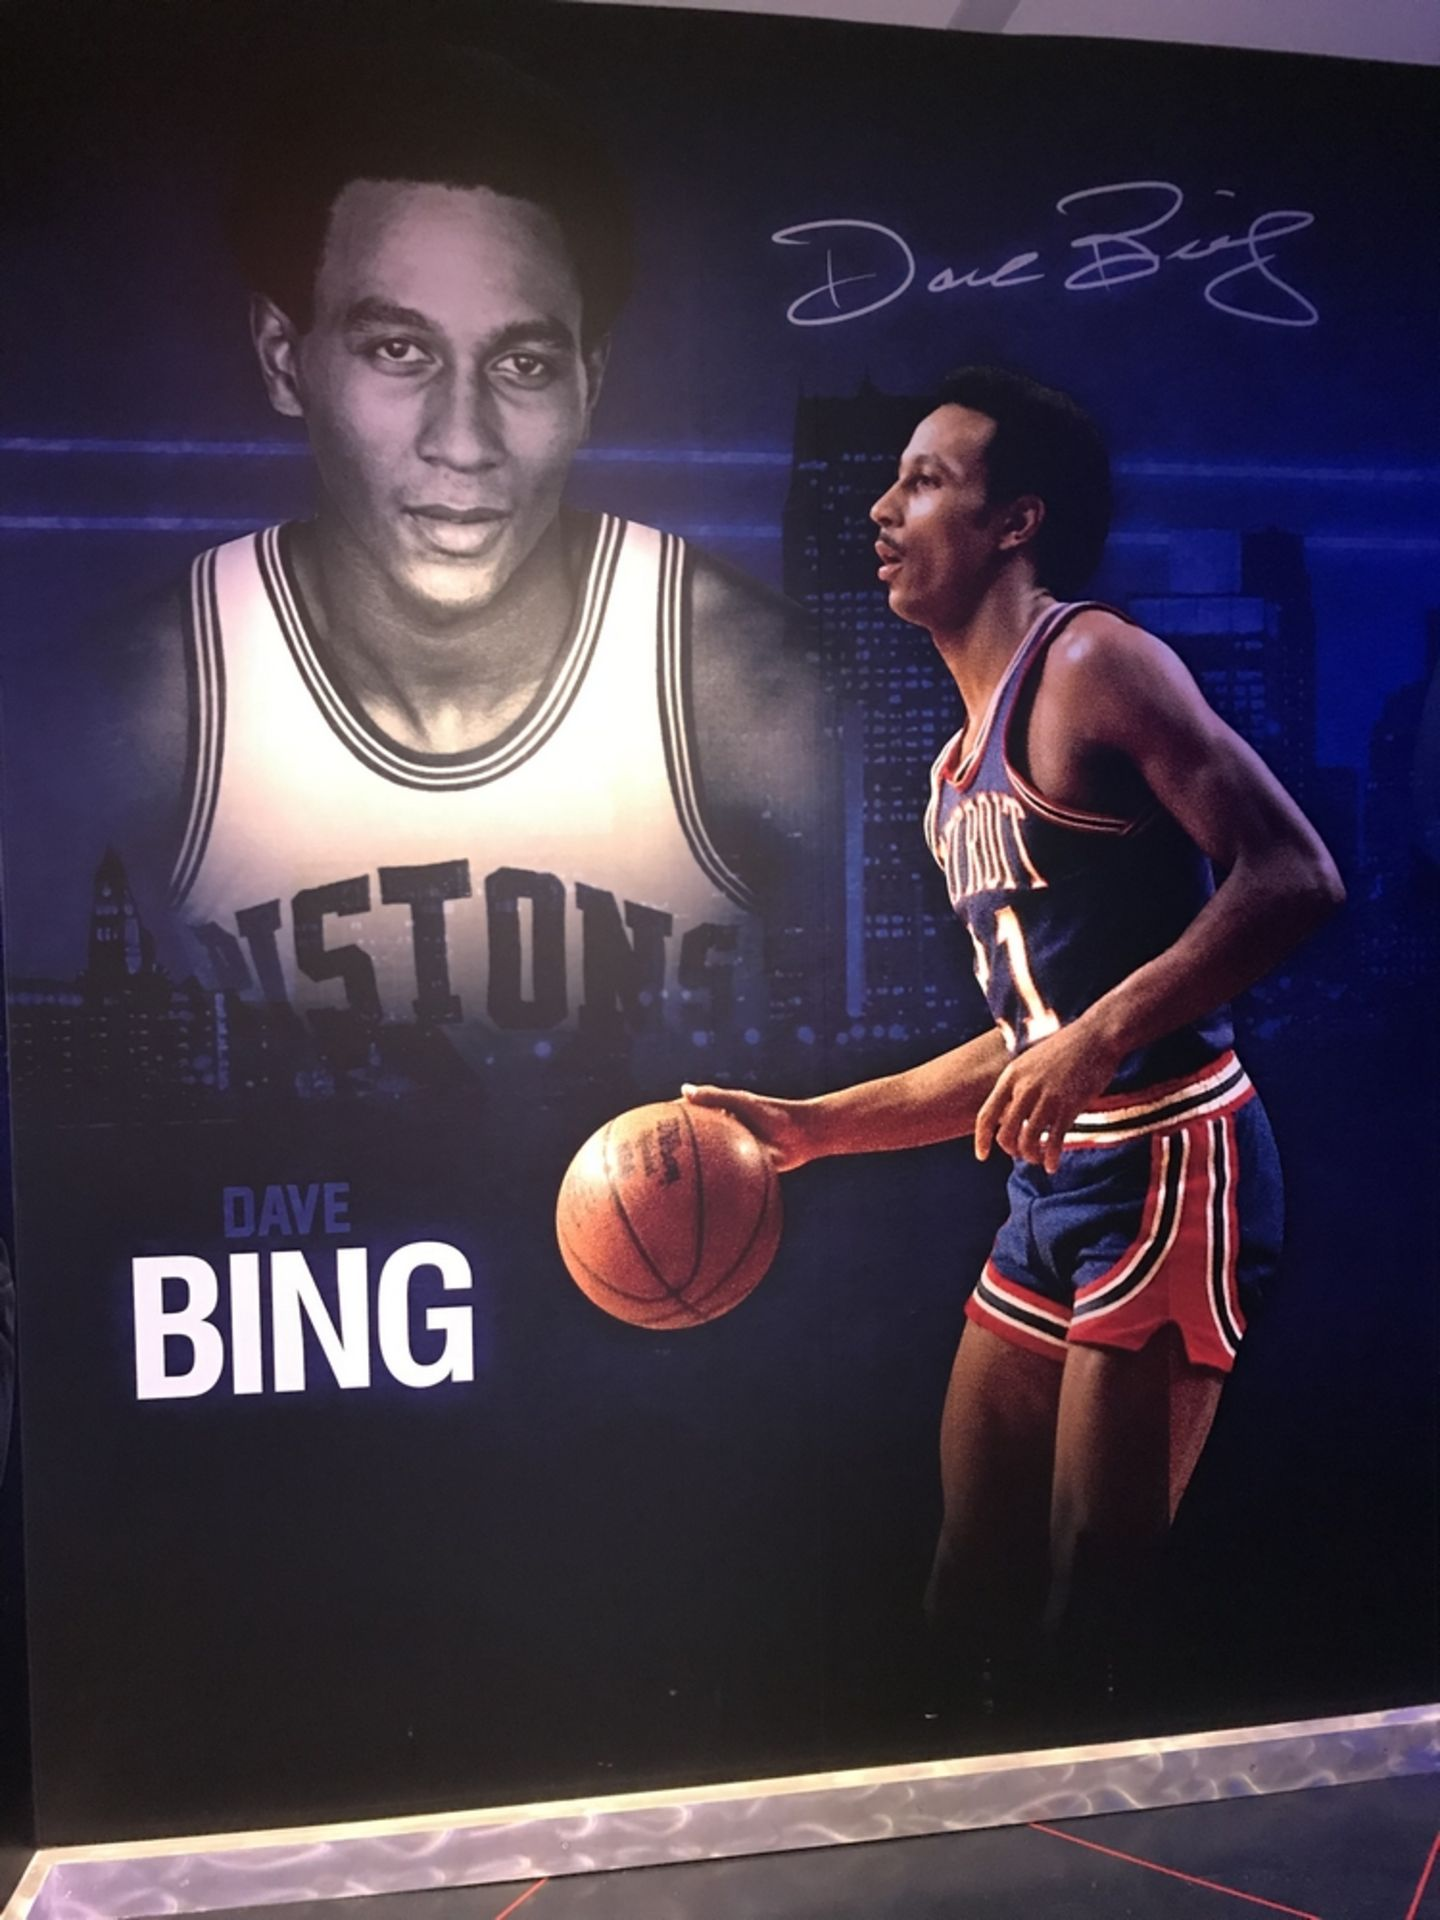 Lot 20 - Dave Bing - Vinyl Wall Mural , Dim. 93 in w x 116 in h , Location: Locker Room ***Note from